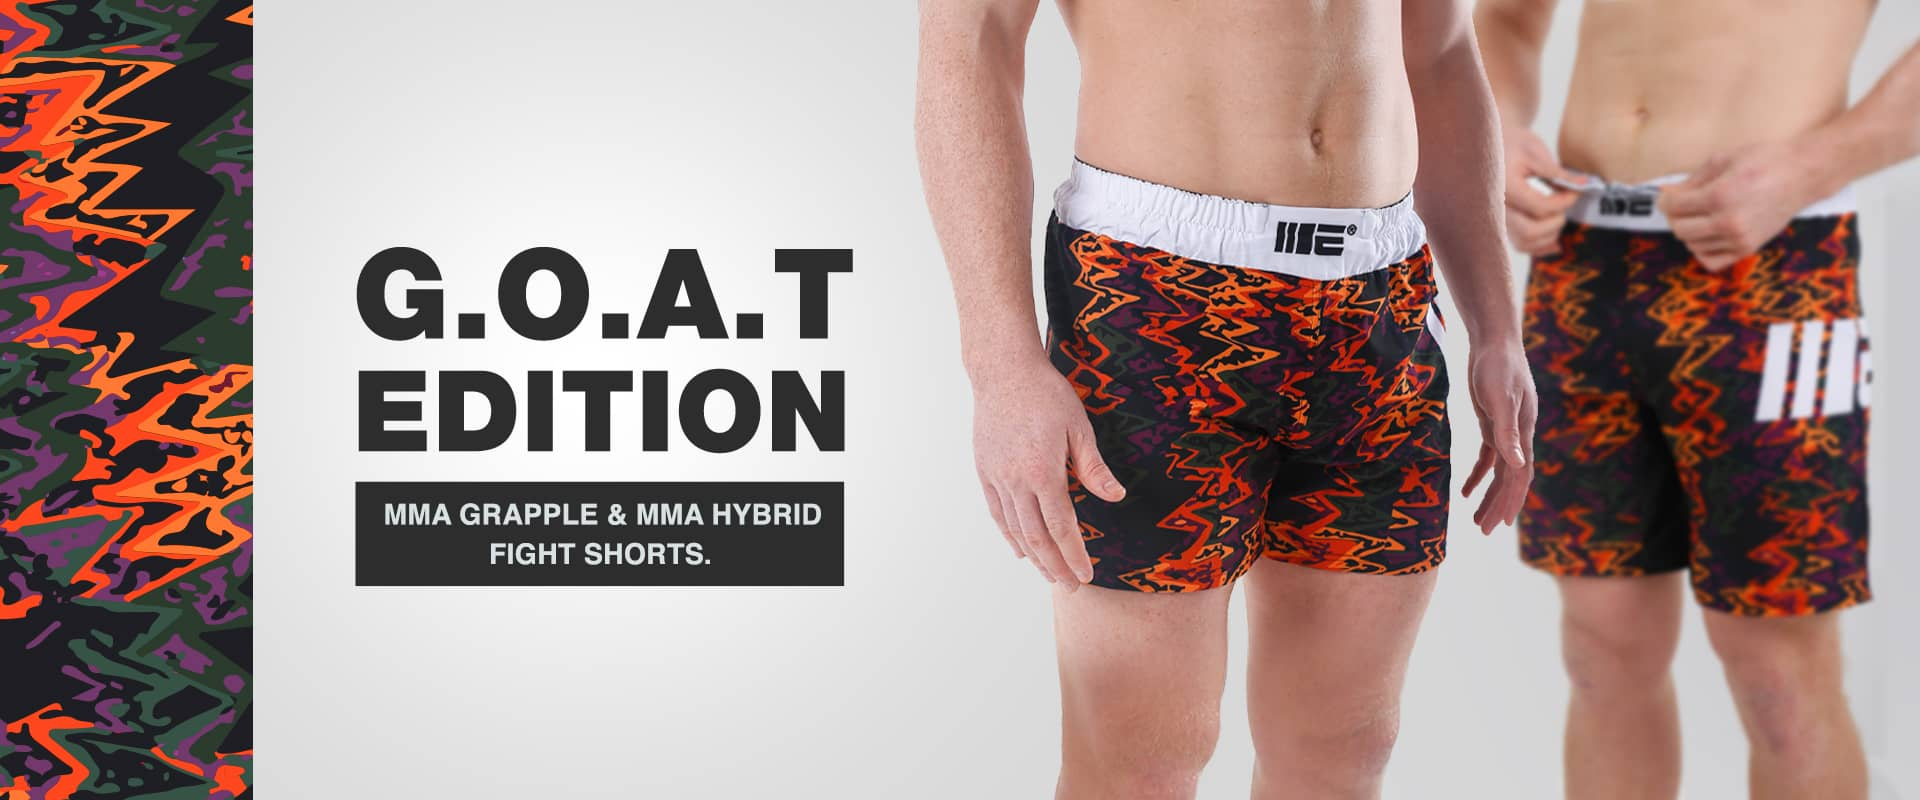 Greatest of all time MMA Shorts by Engage, includes MMA grappling shorts and MMA hybrid shorts | High quality fightwear